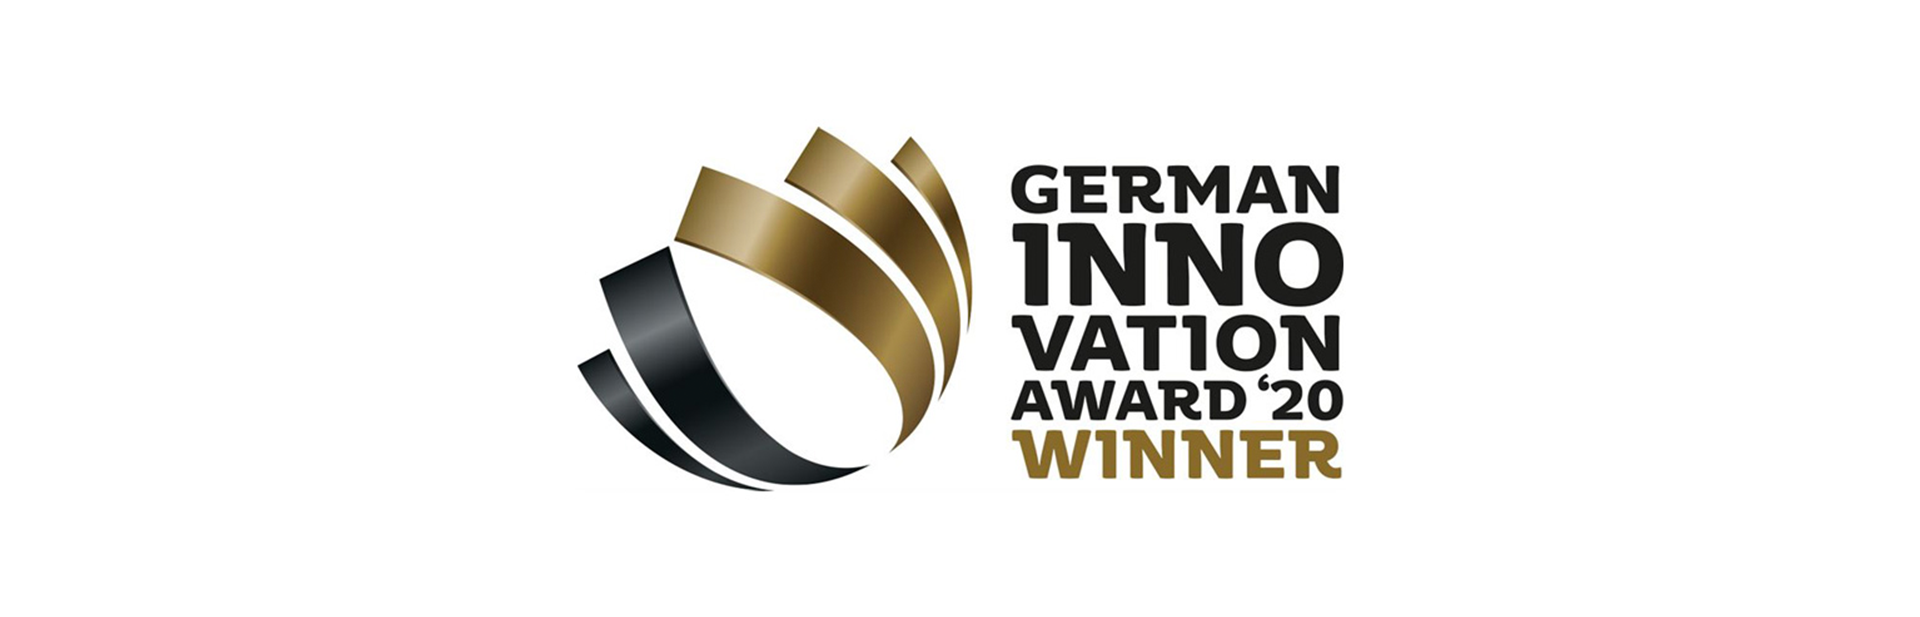 Priznanje za izjemen dizajn: iCOR osvaja nagrado German Innovation Award 2020